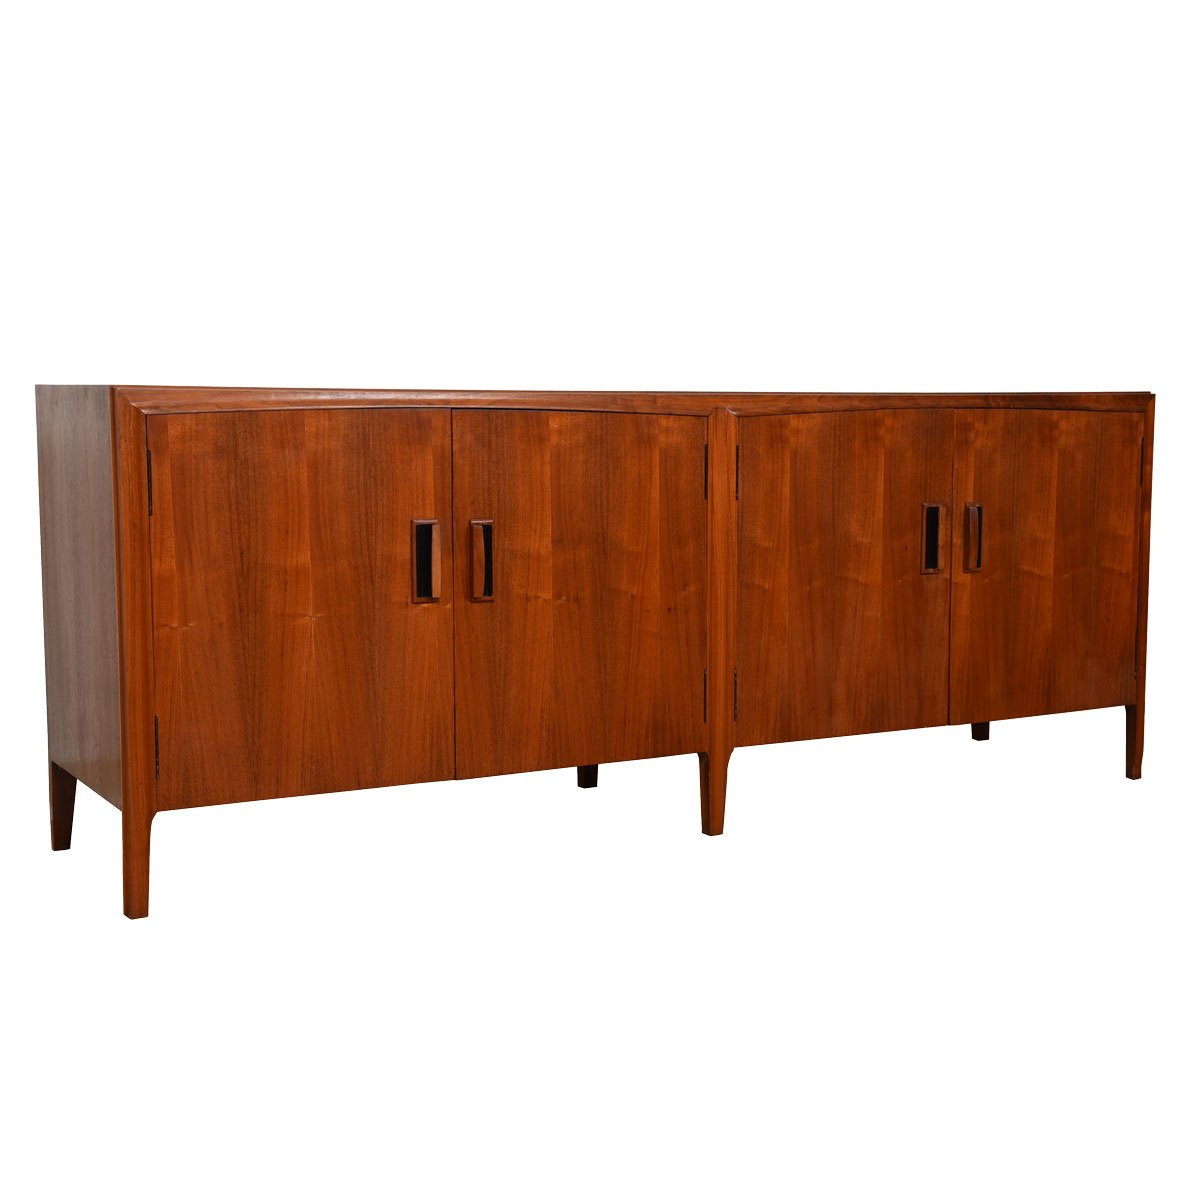 Brown Saltman American Modernist Walnut 2 Piece Display / Storage Cabinet